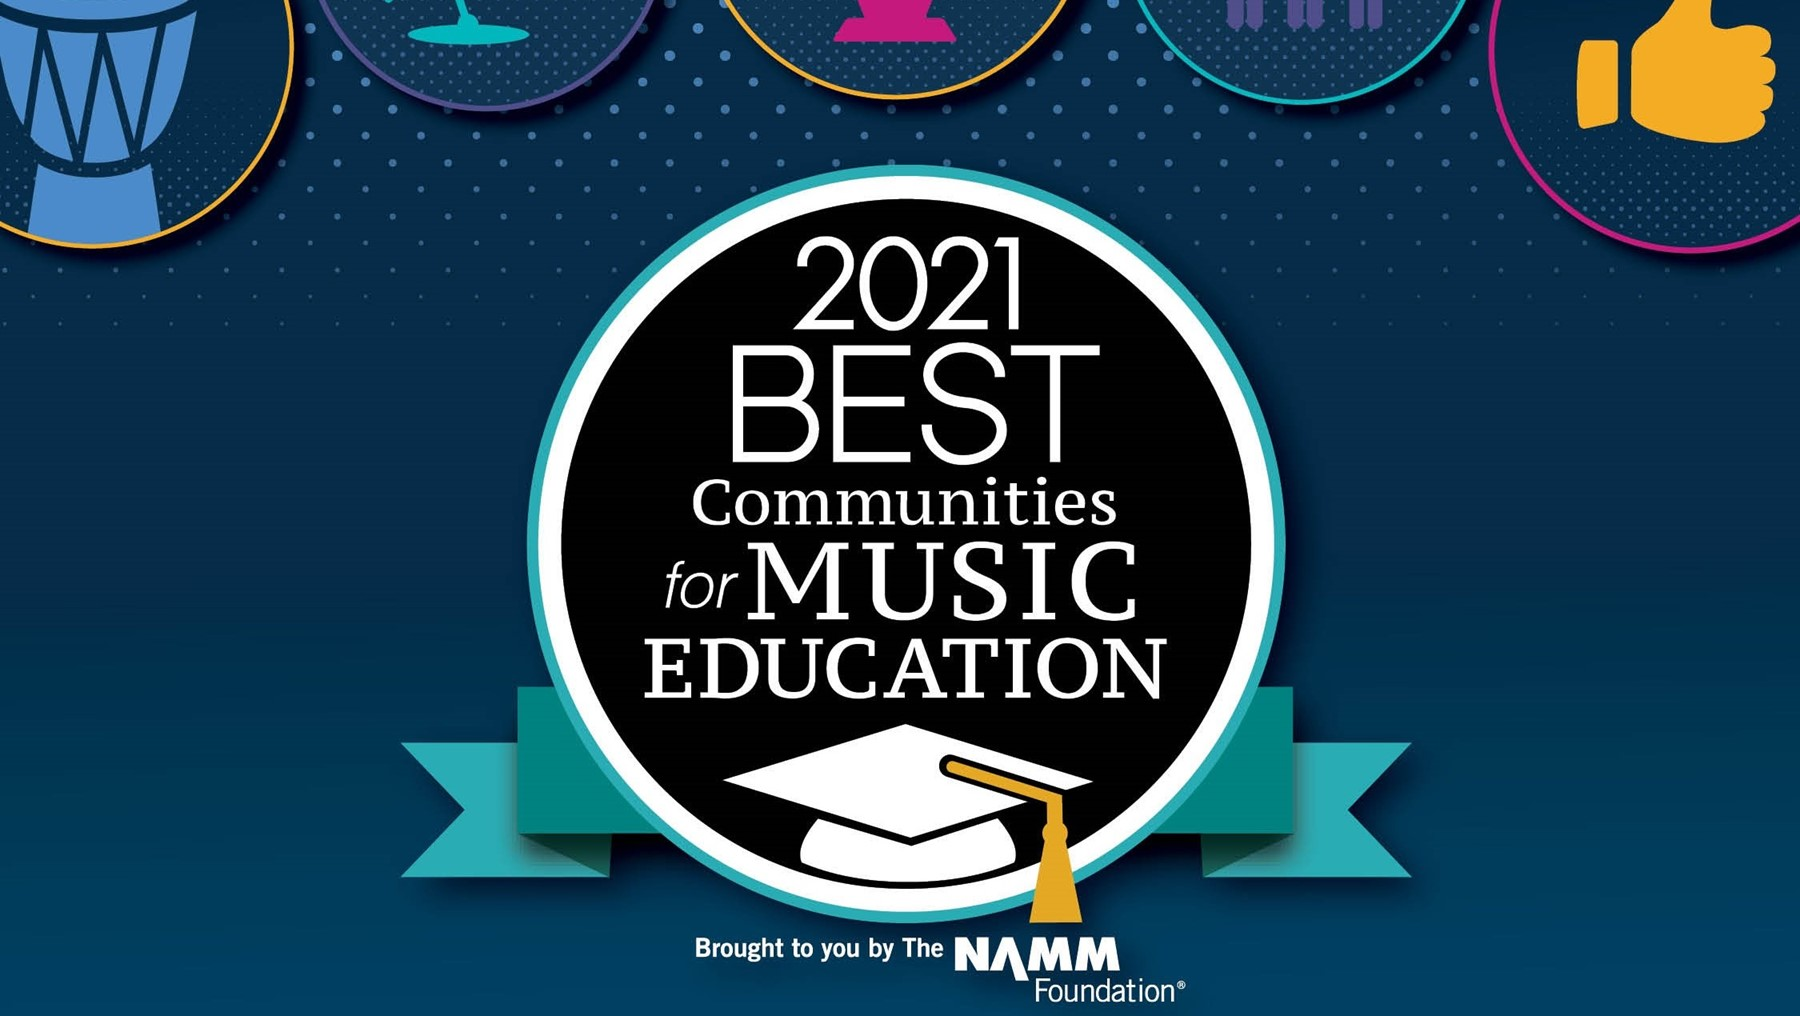 BCSD MUSIC EDUCATION RECEIVES NATIONAL RECOGNITION